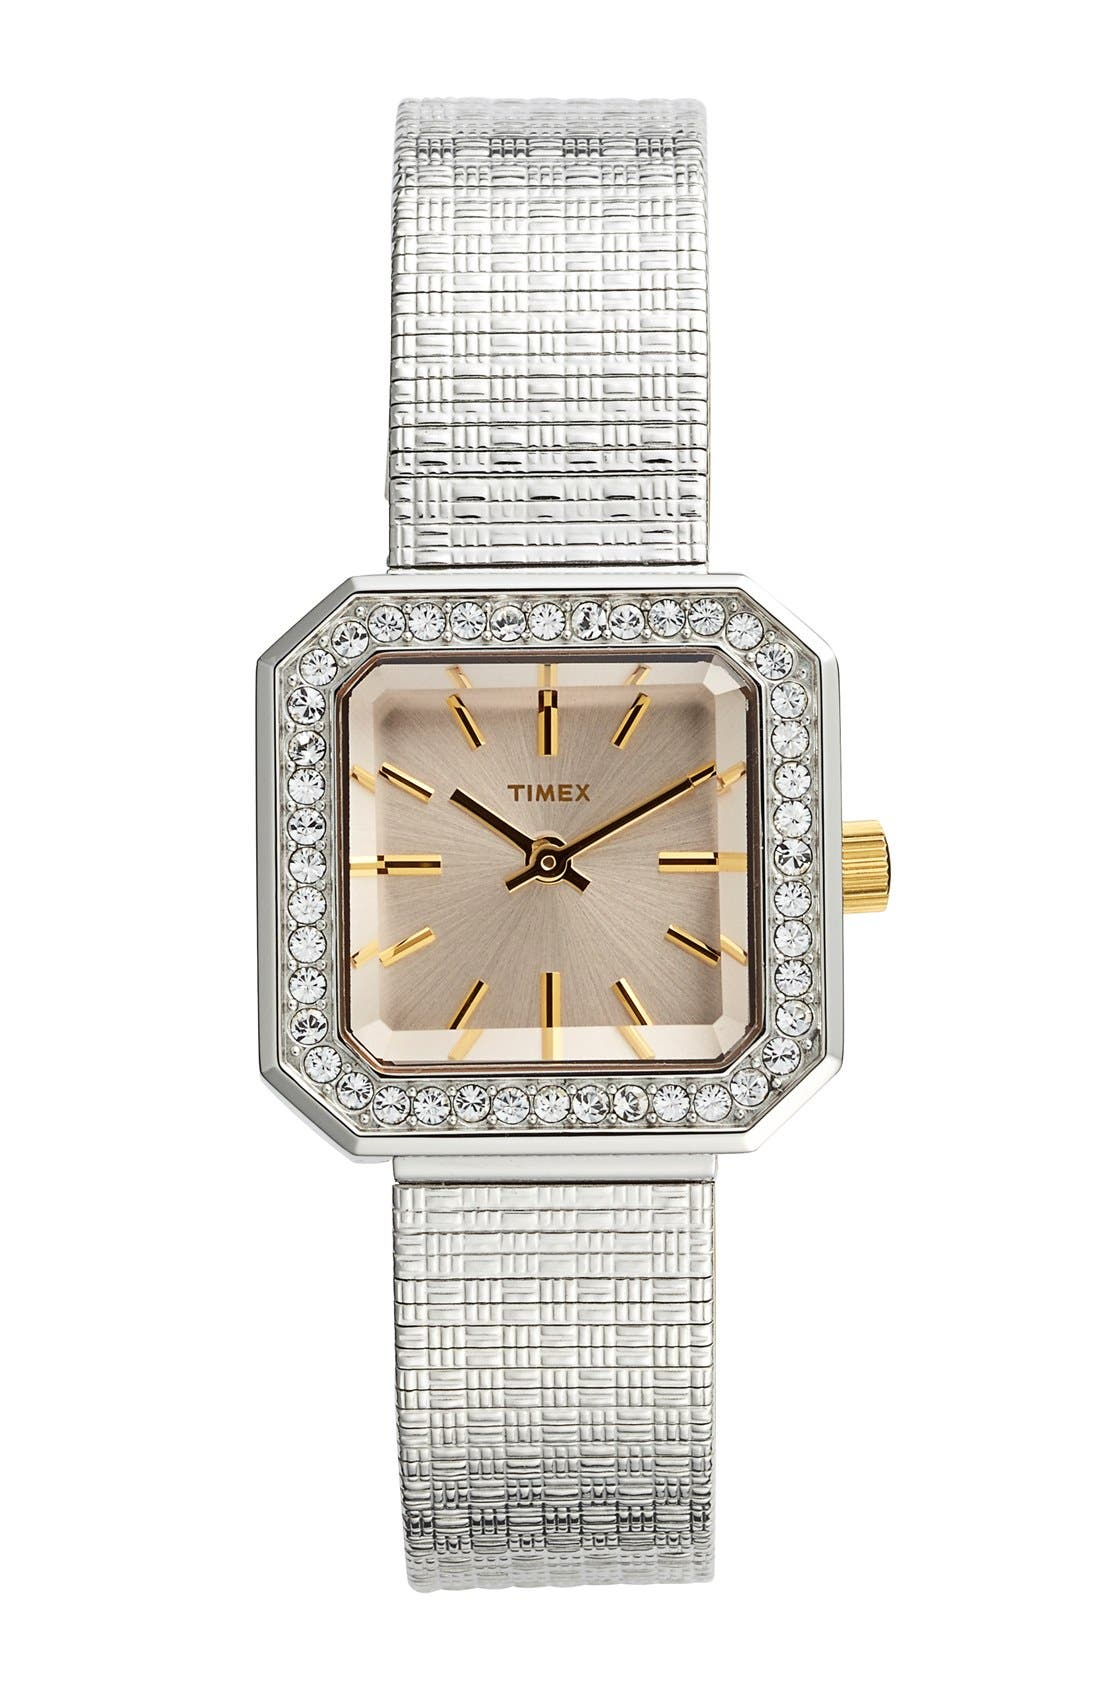 Main Image - Timex® 'Starlight' Crystal Bezel Square Mesh Strap Watch, 25mm